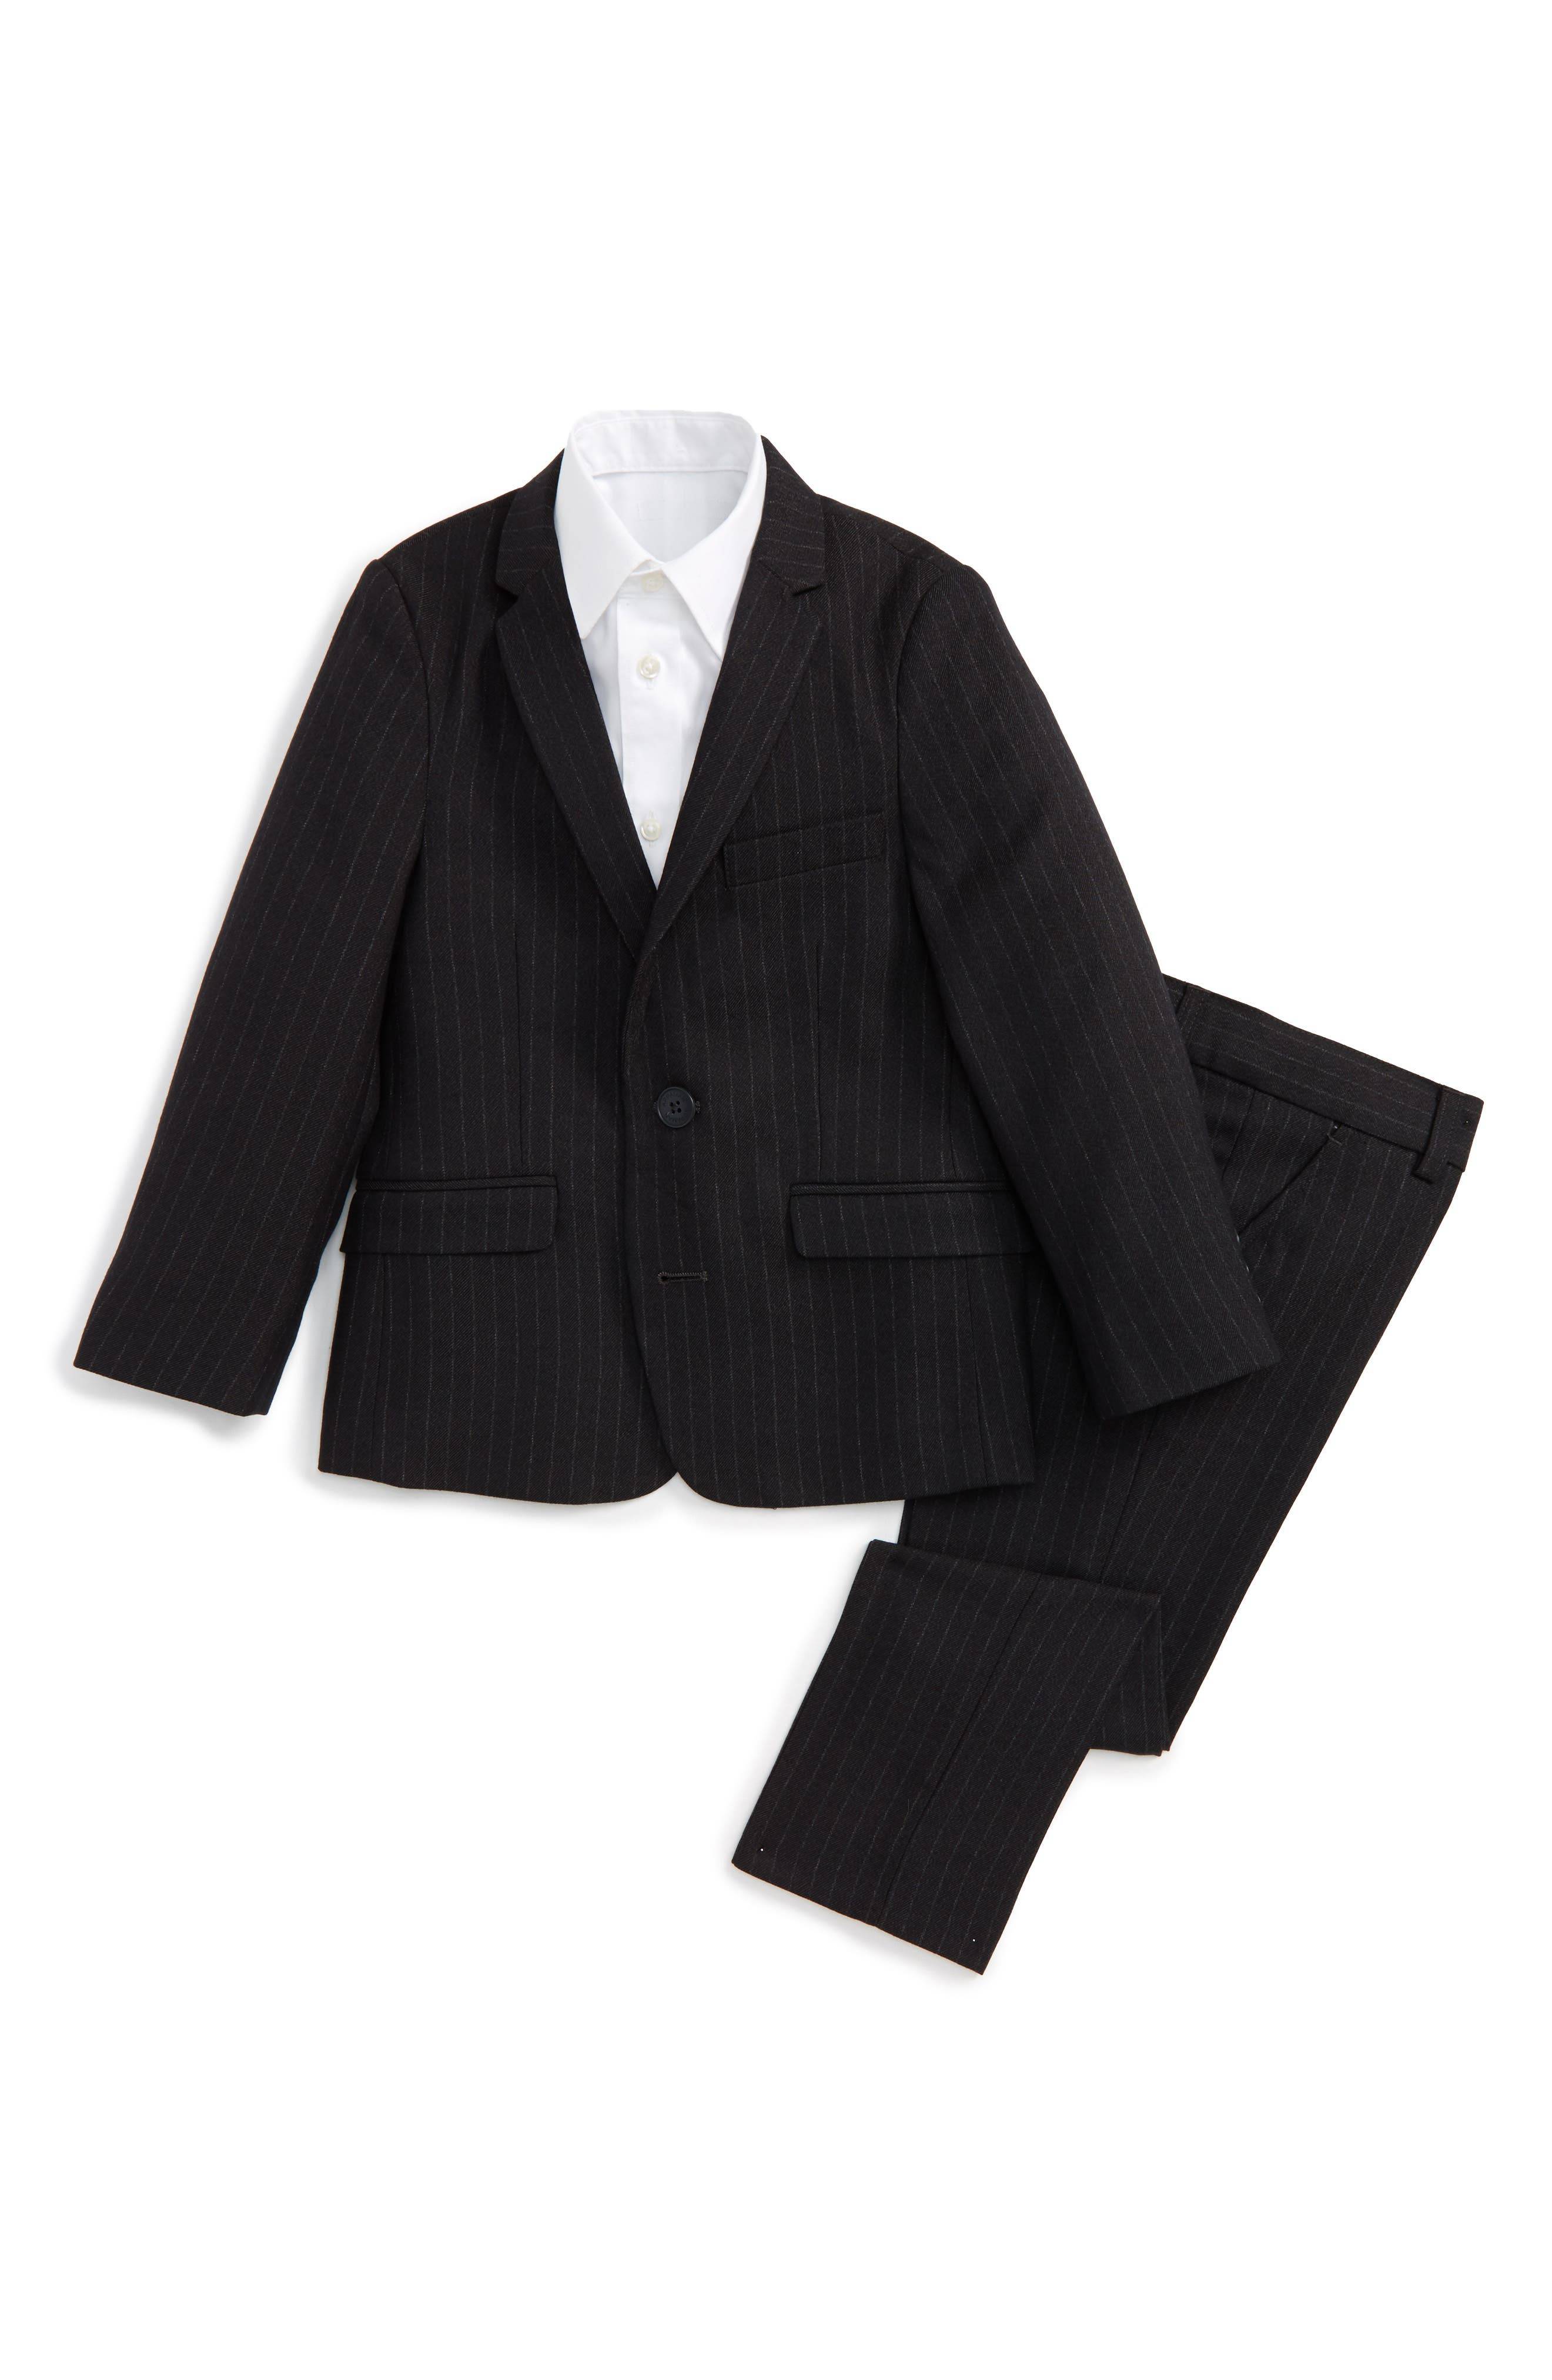 Mod Pinstripe Suit,                         Main,                         color, 020